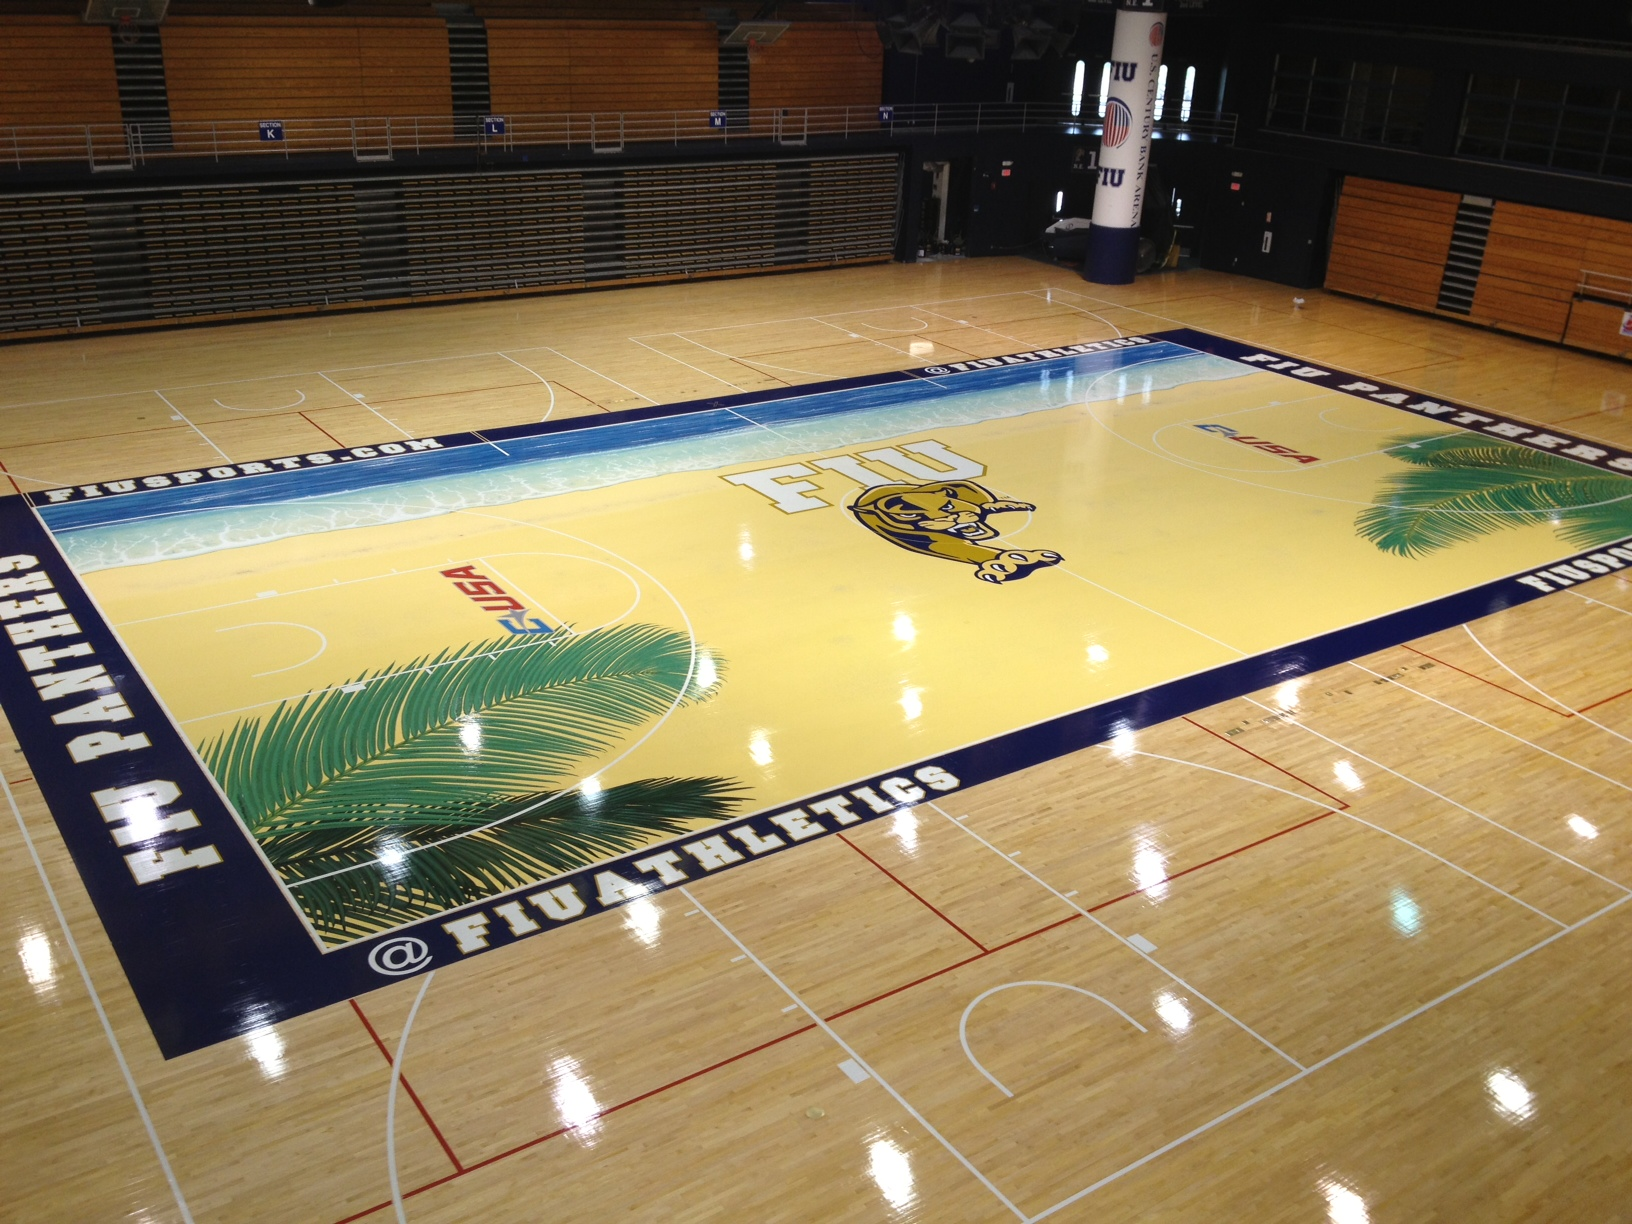 east court a stories srx spokane wooden mar ncaa the is floor courts out r for floors inside remake laid with logo basketball shipped arena